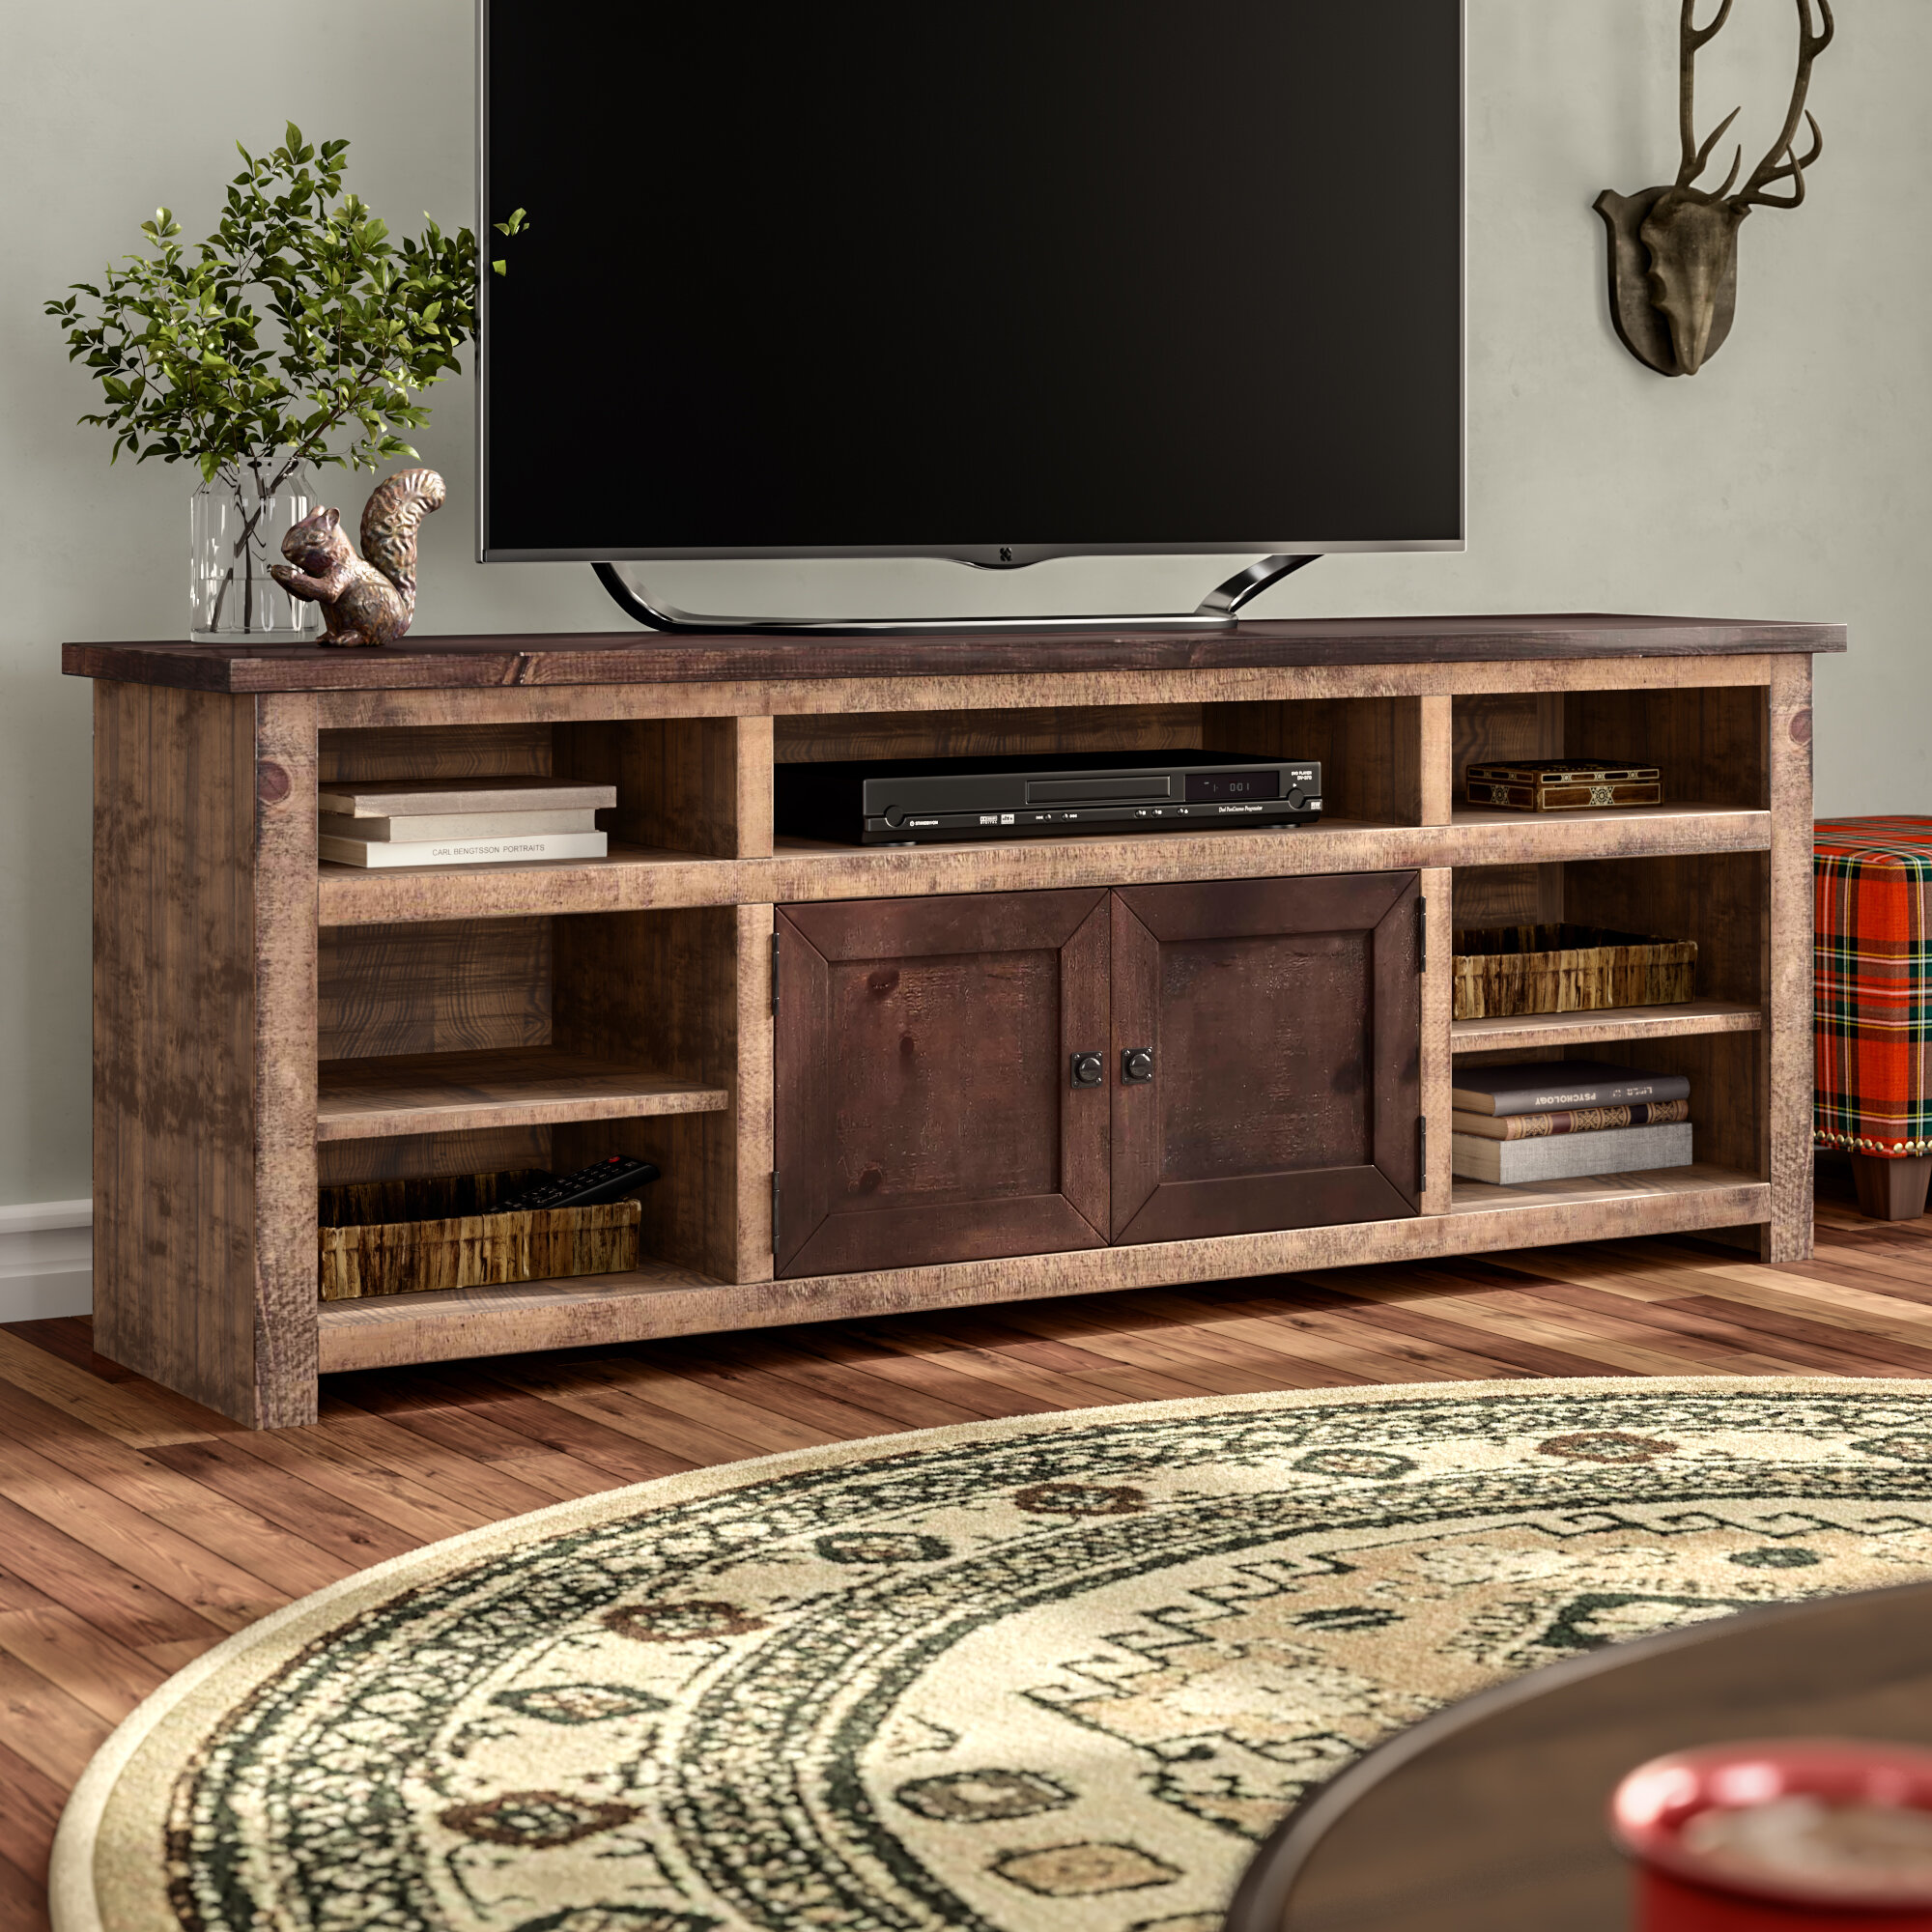 Cottage   Country   Rustic TV Stands   Entertainment Centers You ll ... ea3dabab1e24